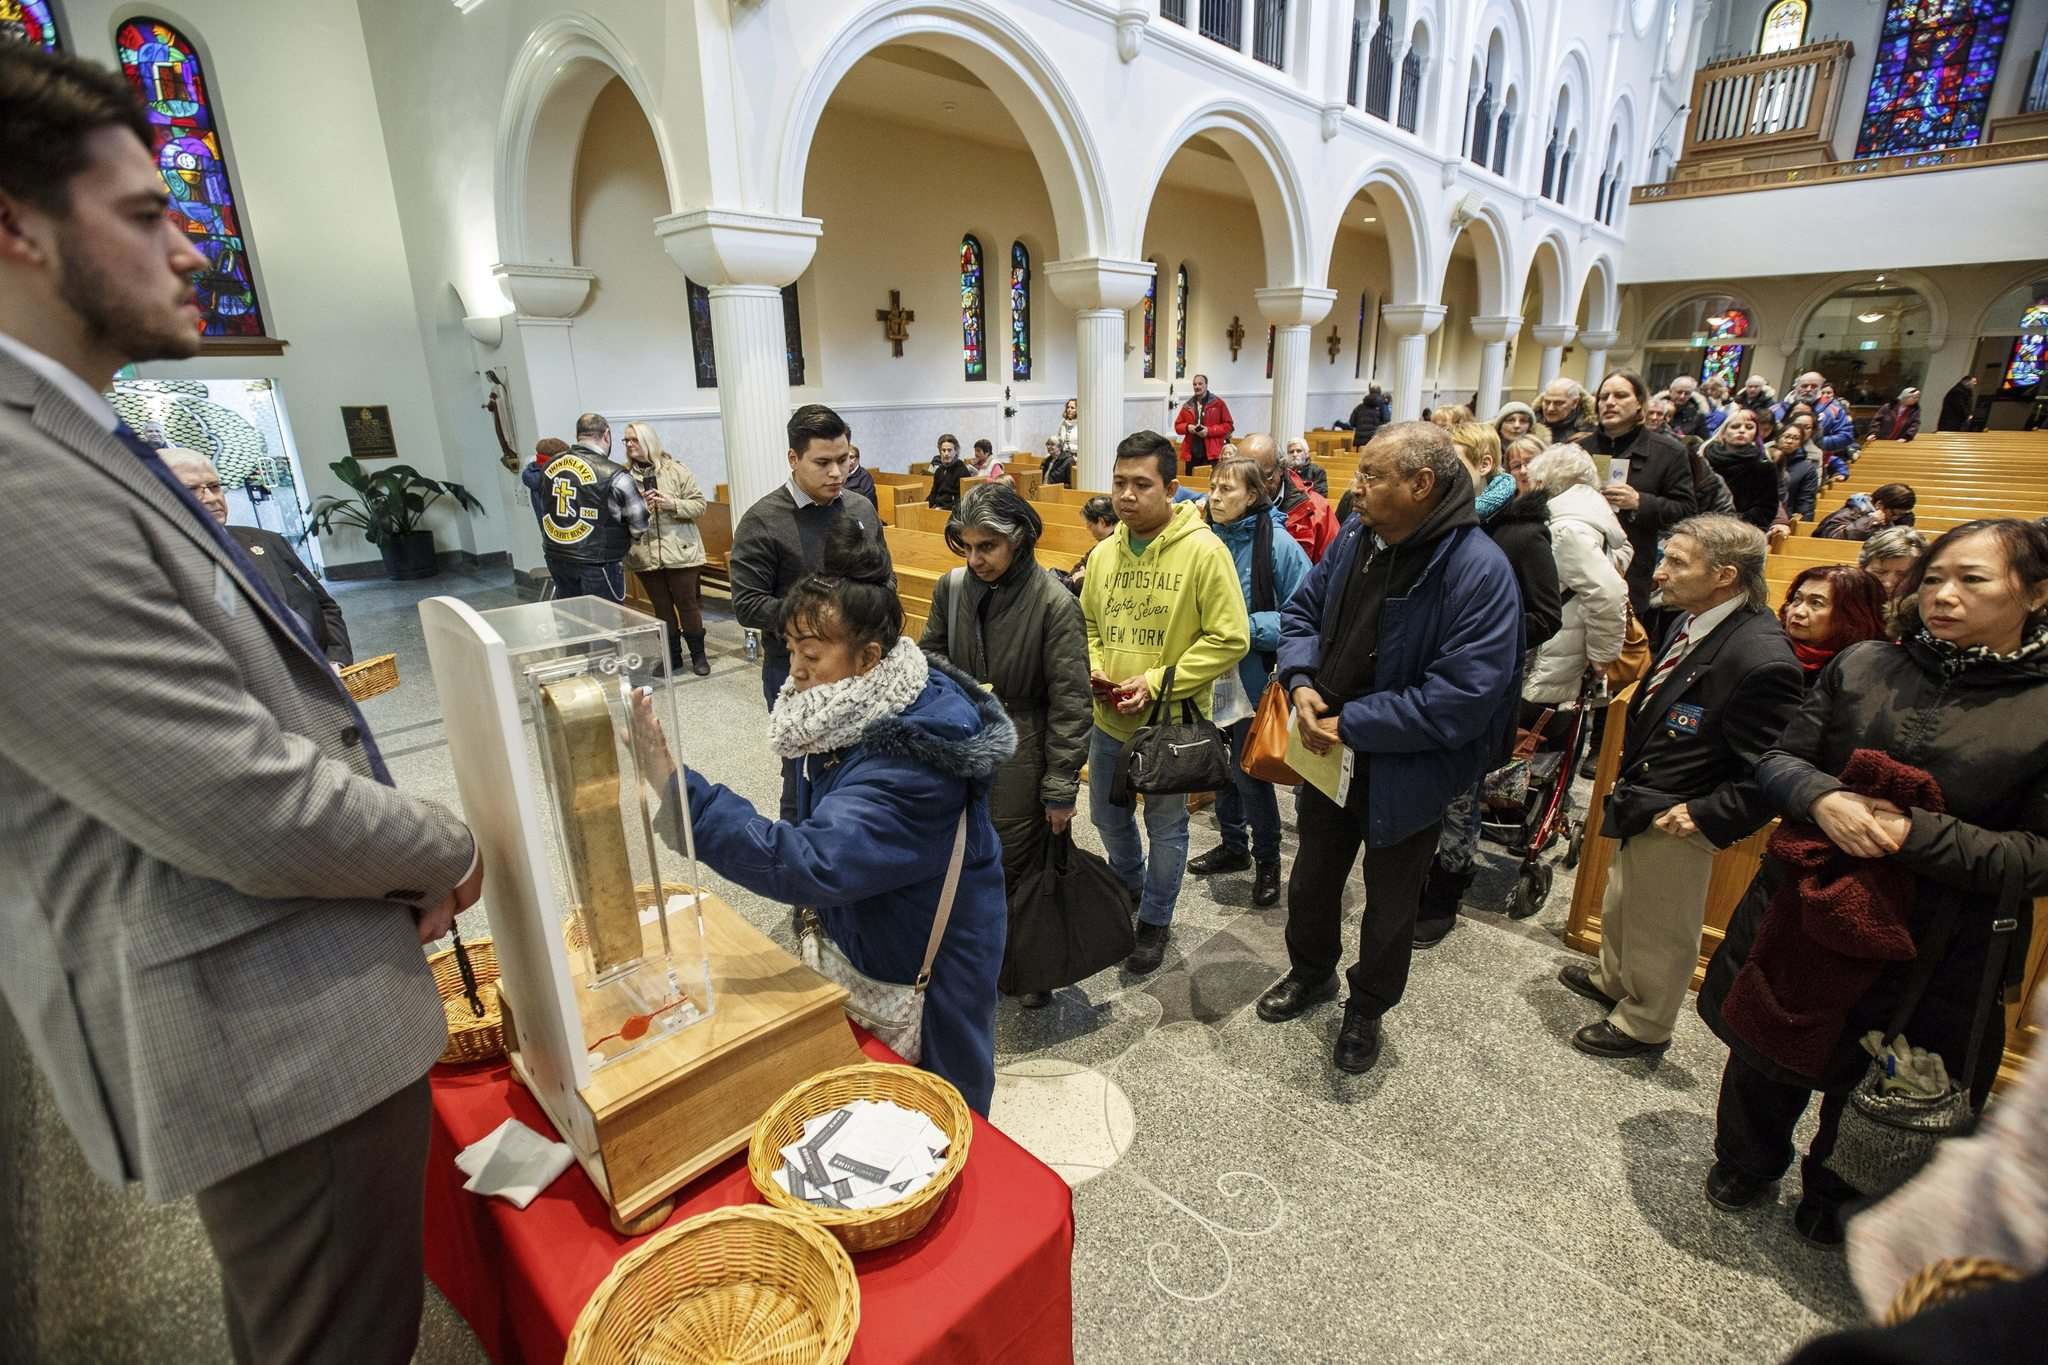 MIKE DEAL / WINNIPEG FREE PRESS</p><p>Parishioners take part in the public venerations of the relic of St. Francis Xavier.</p>